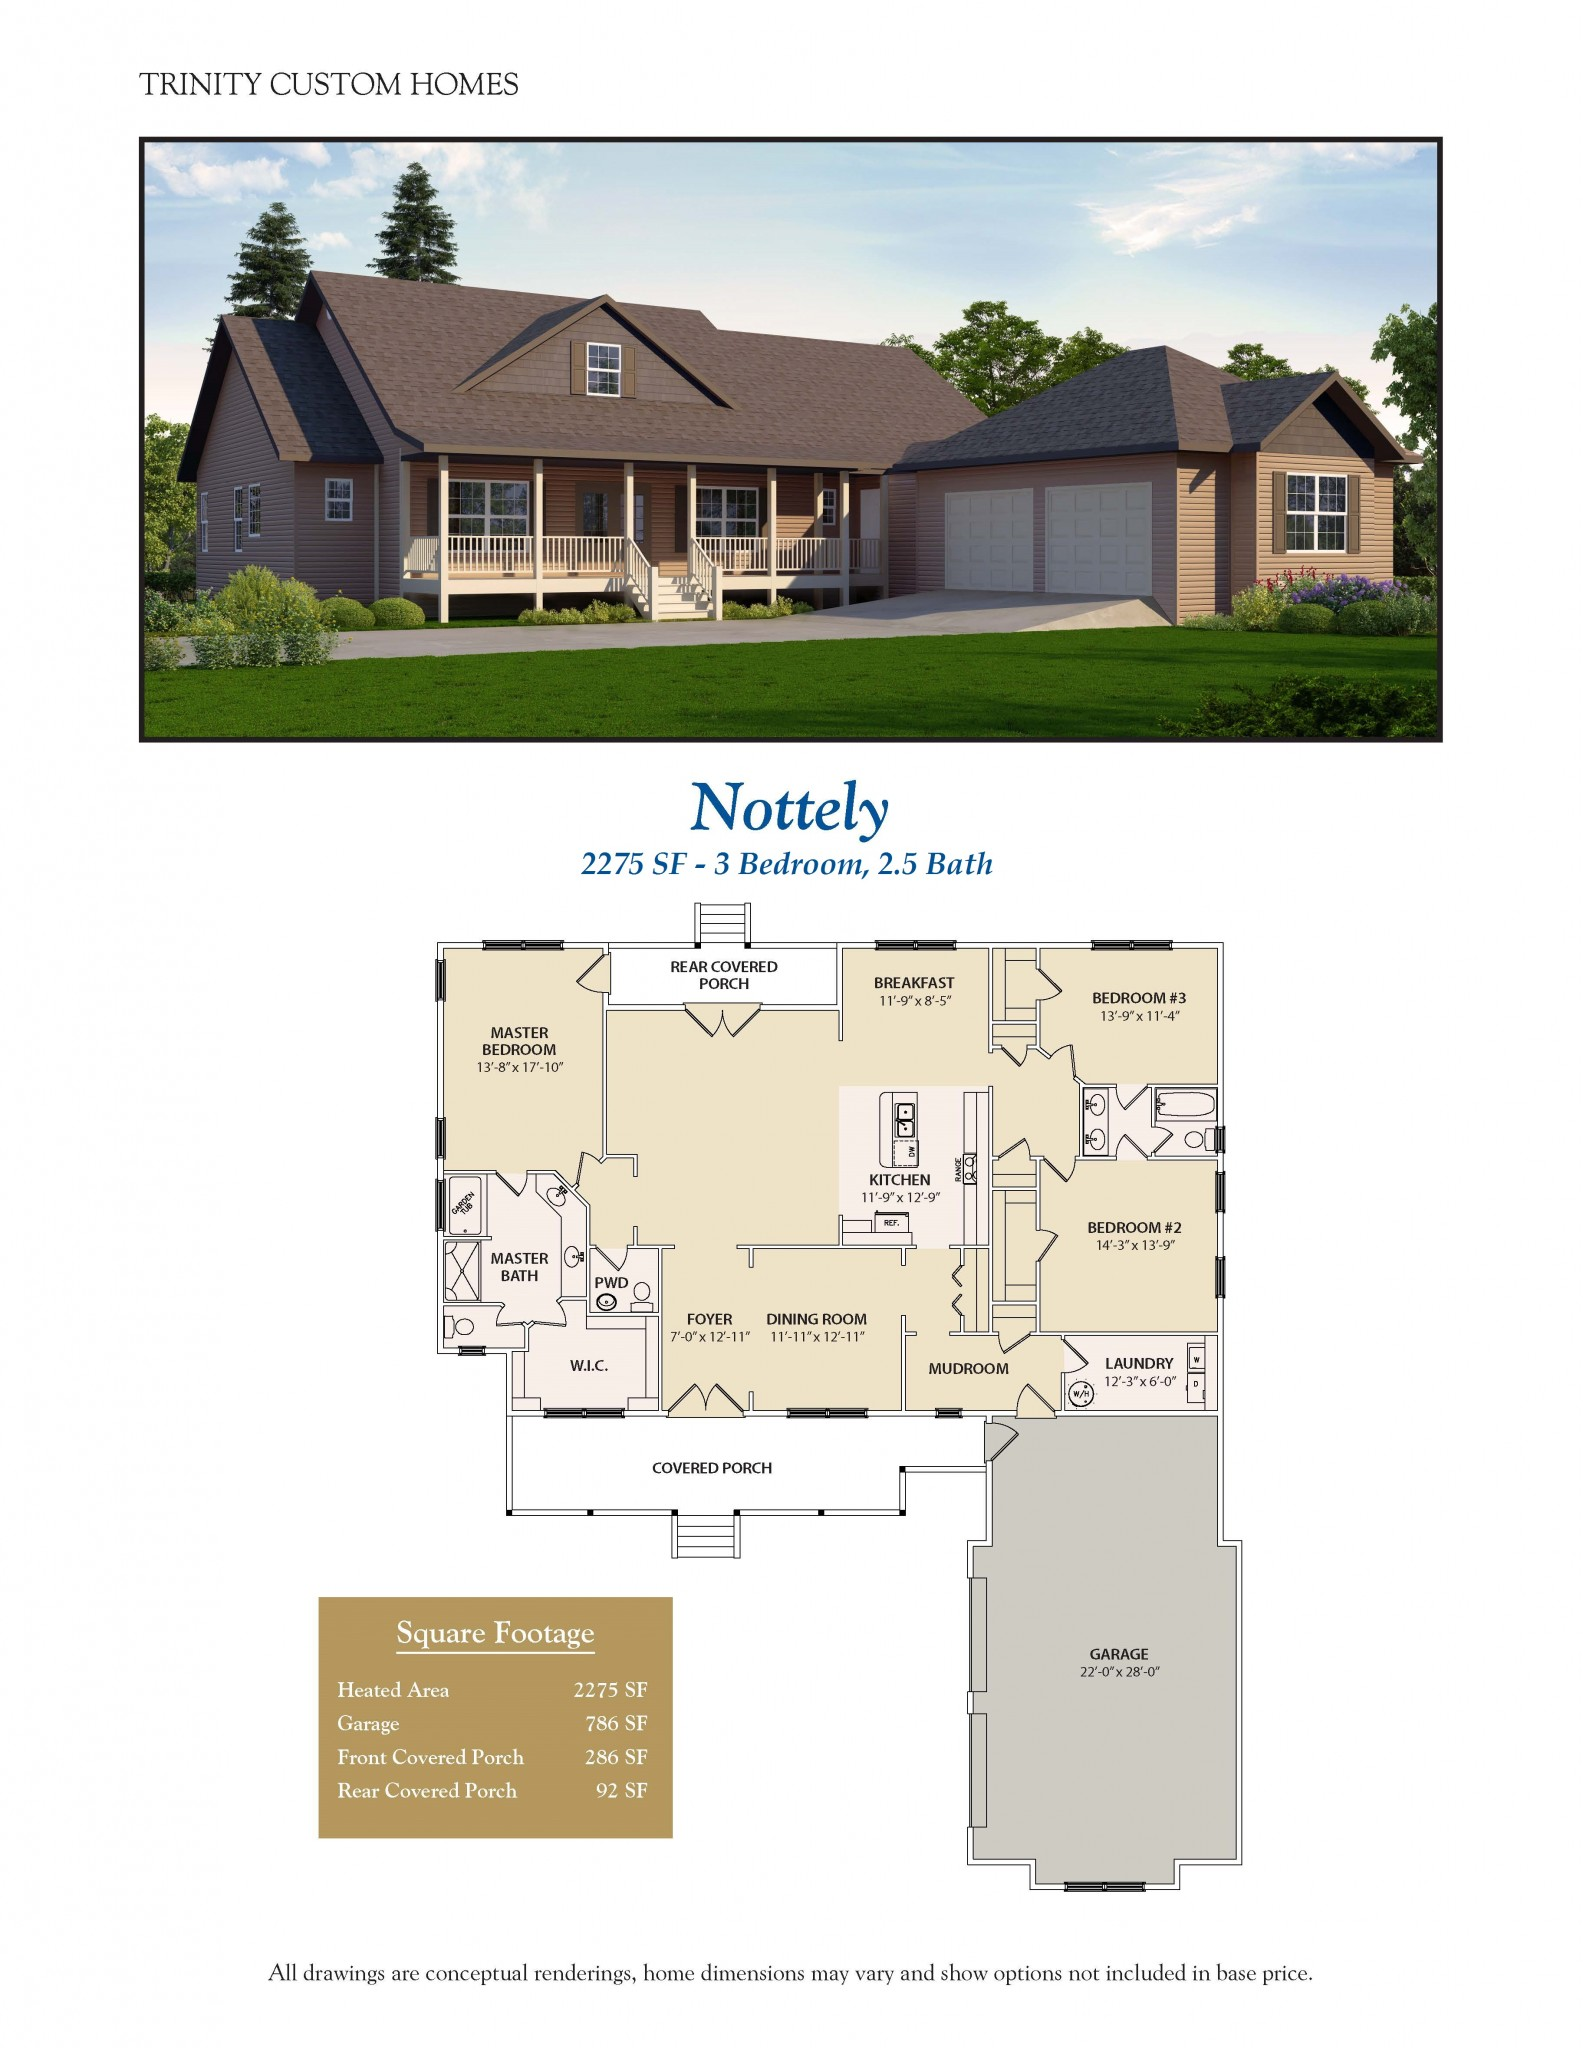 Nottely welcome to trinity custom homes for Trinity house plans